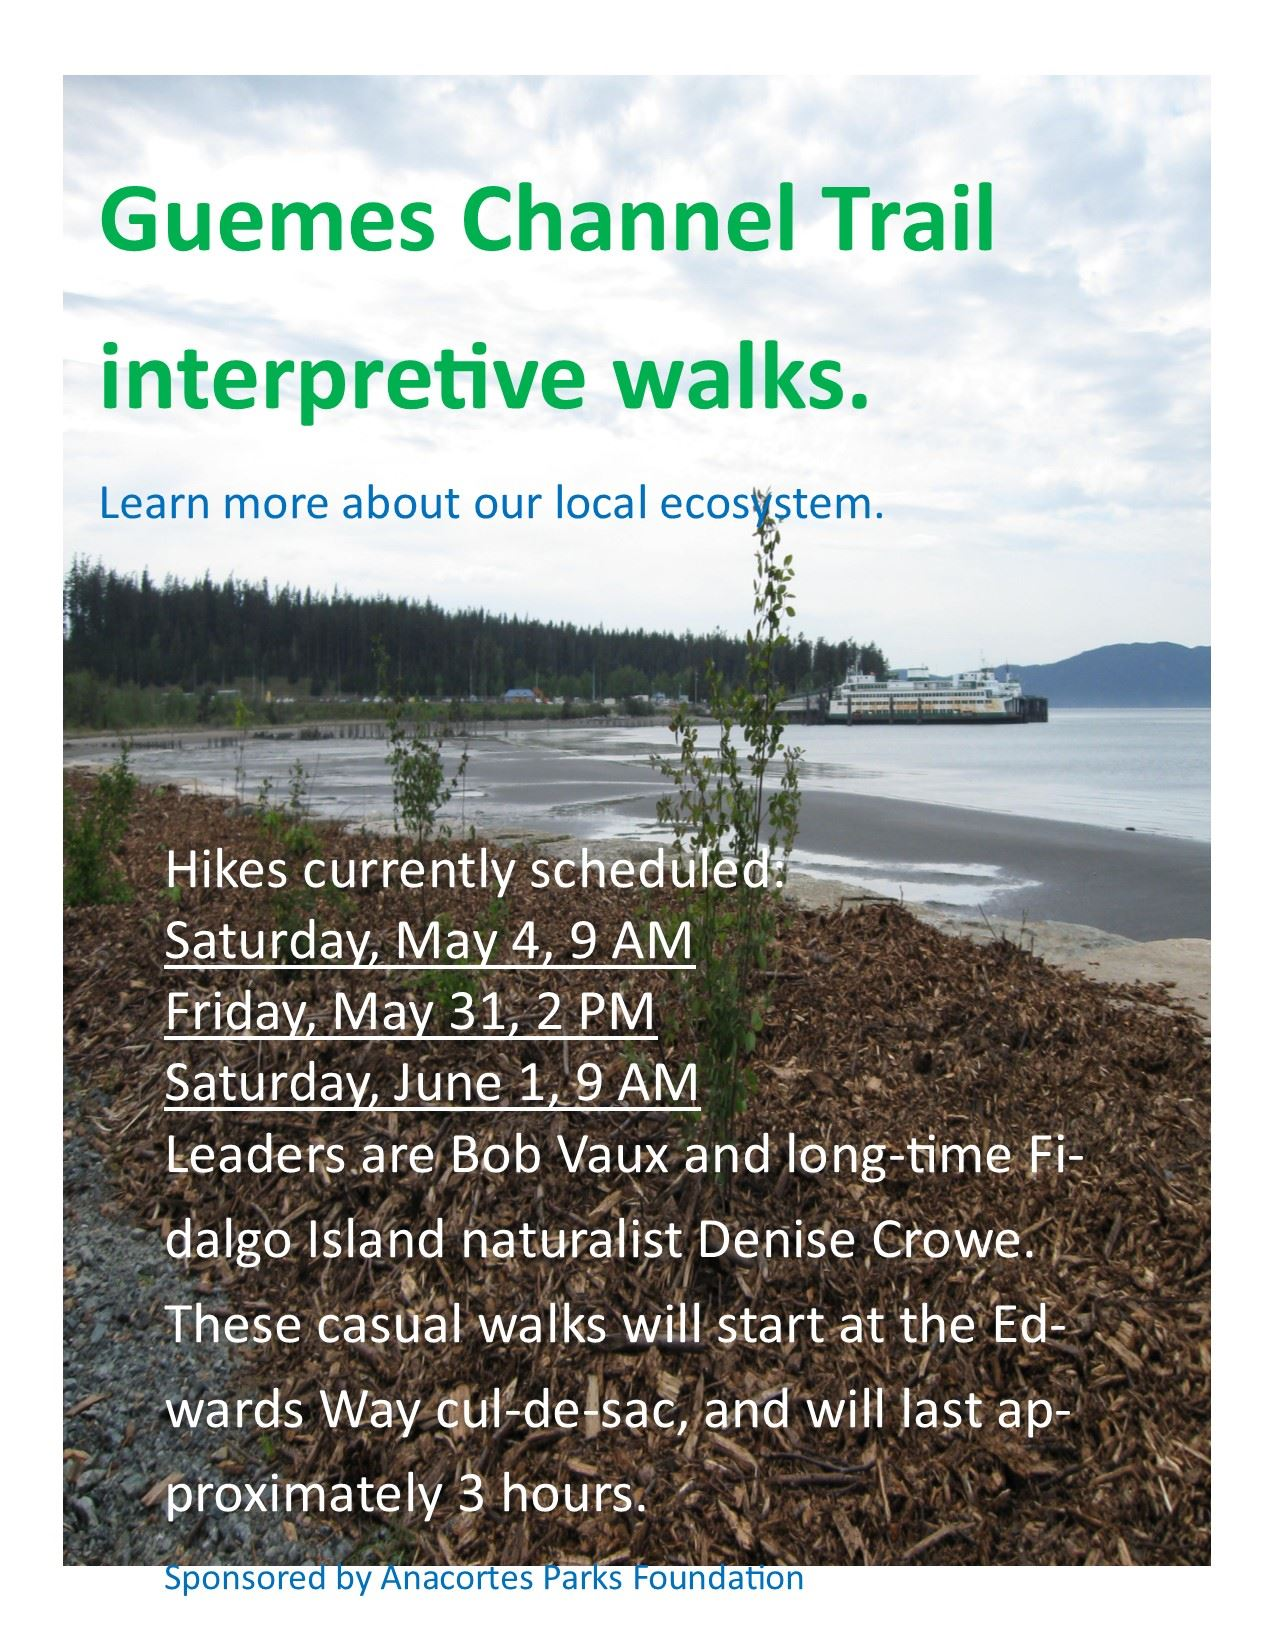 GCT interpretive hikes 2019